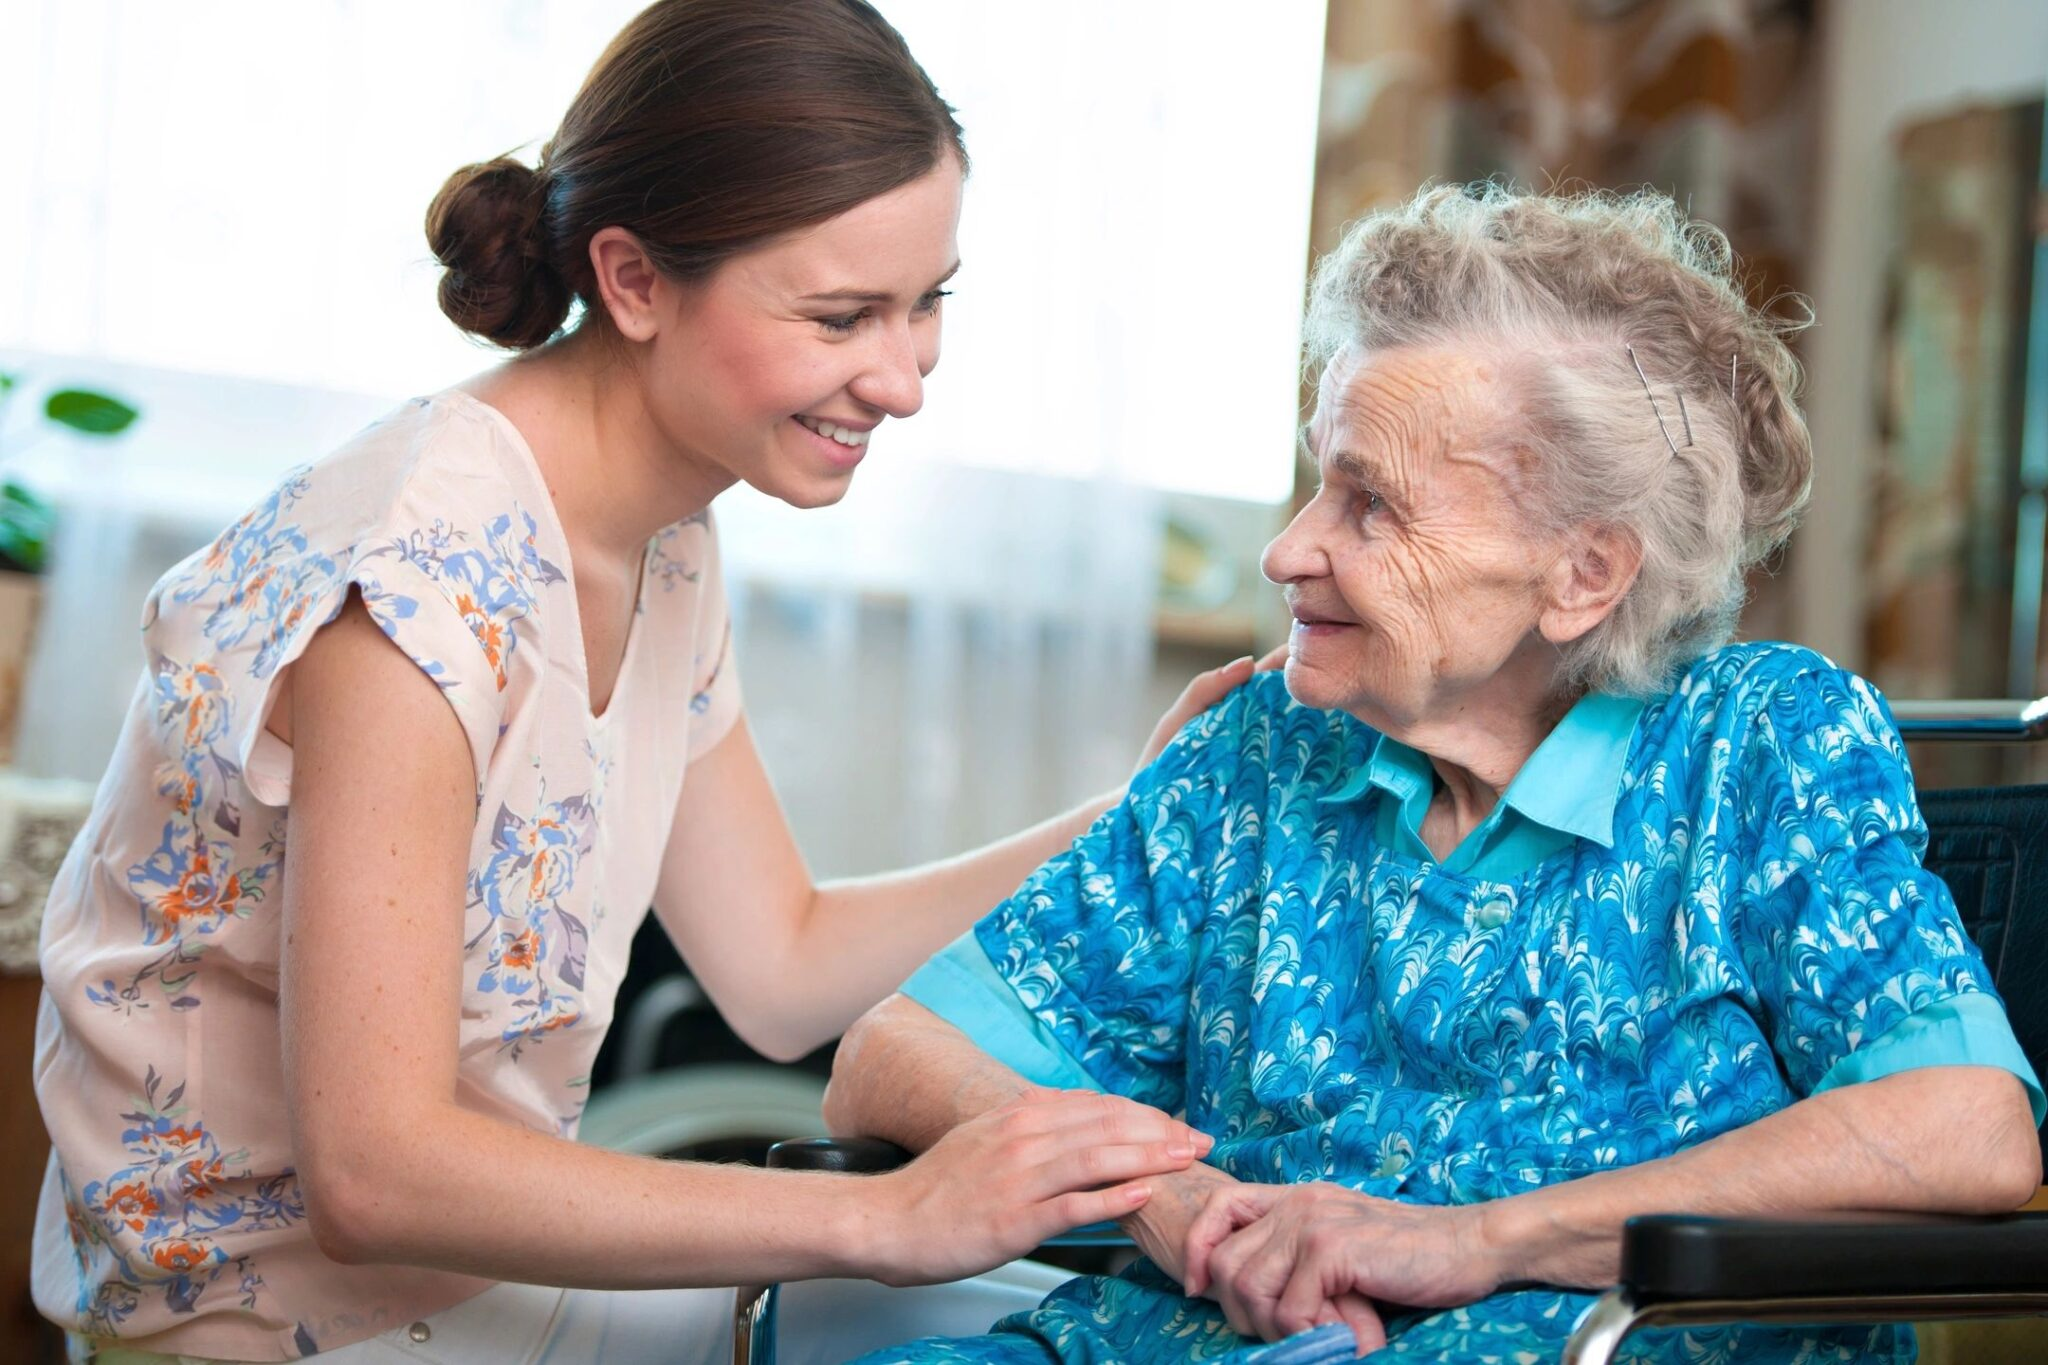 Care Managers ensure the safety of the elderly